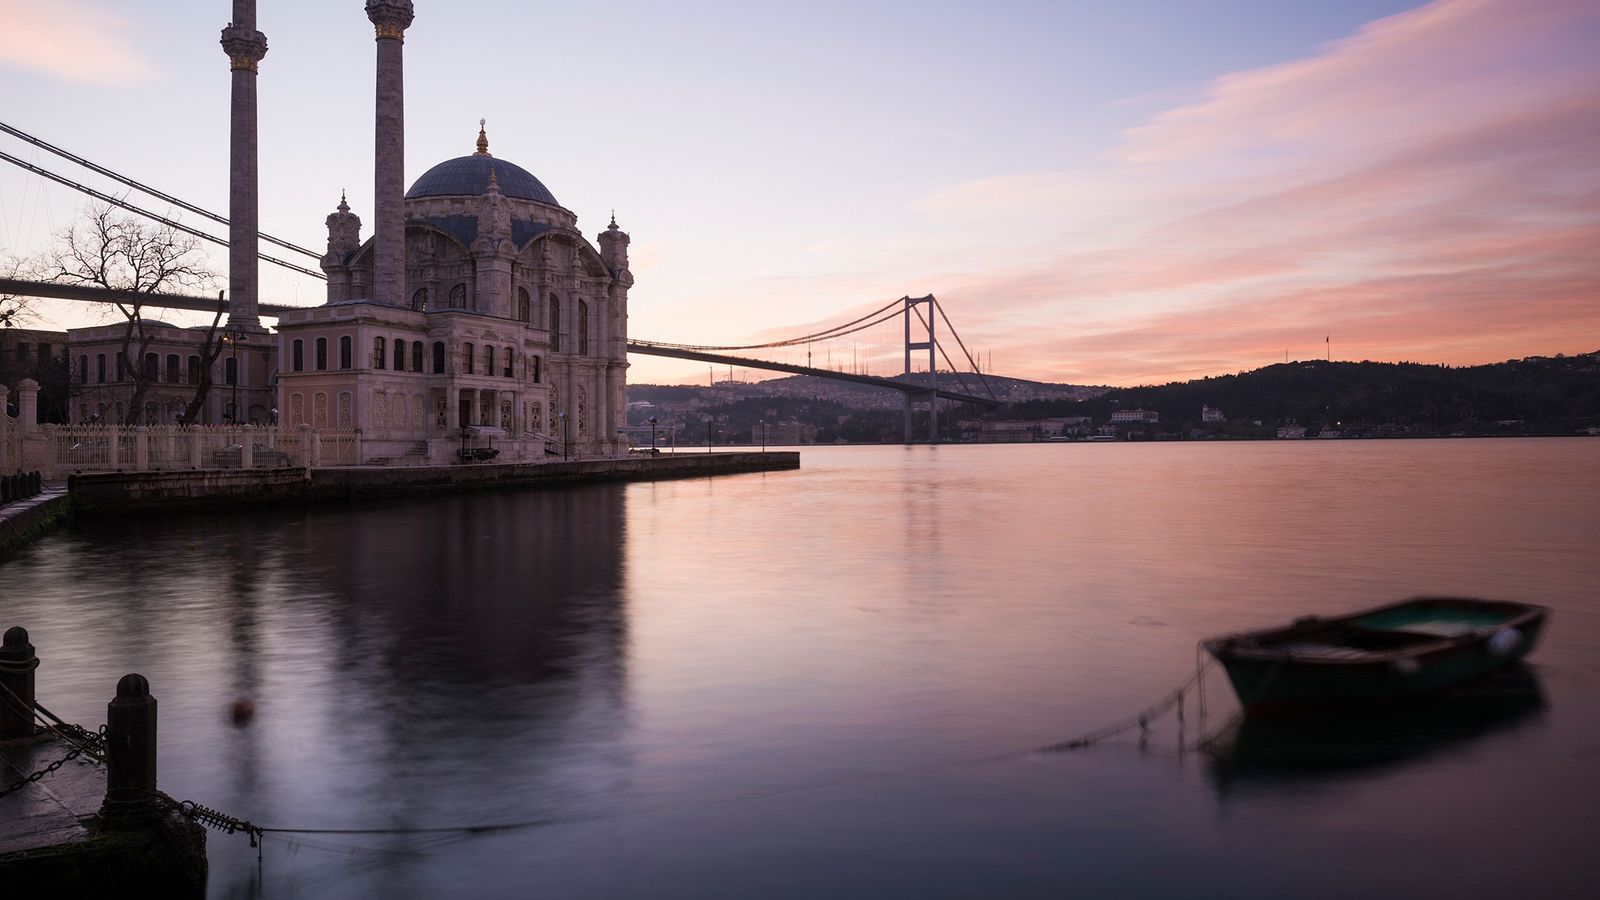 Dawn casts a rosy glow on Ortakoy Mosque in Istanbul, Turkey. Boreholes in the nearby Sea ...